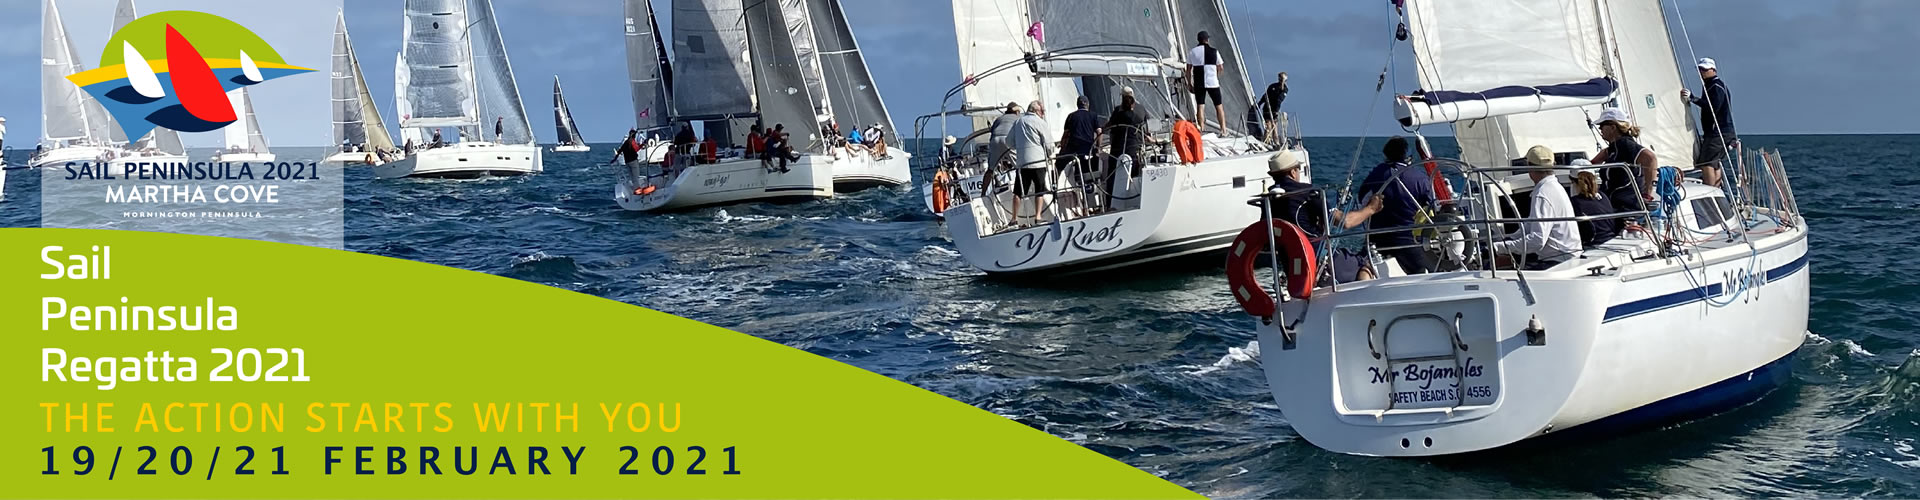 2021 sail peninsula regatta